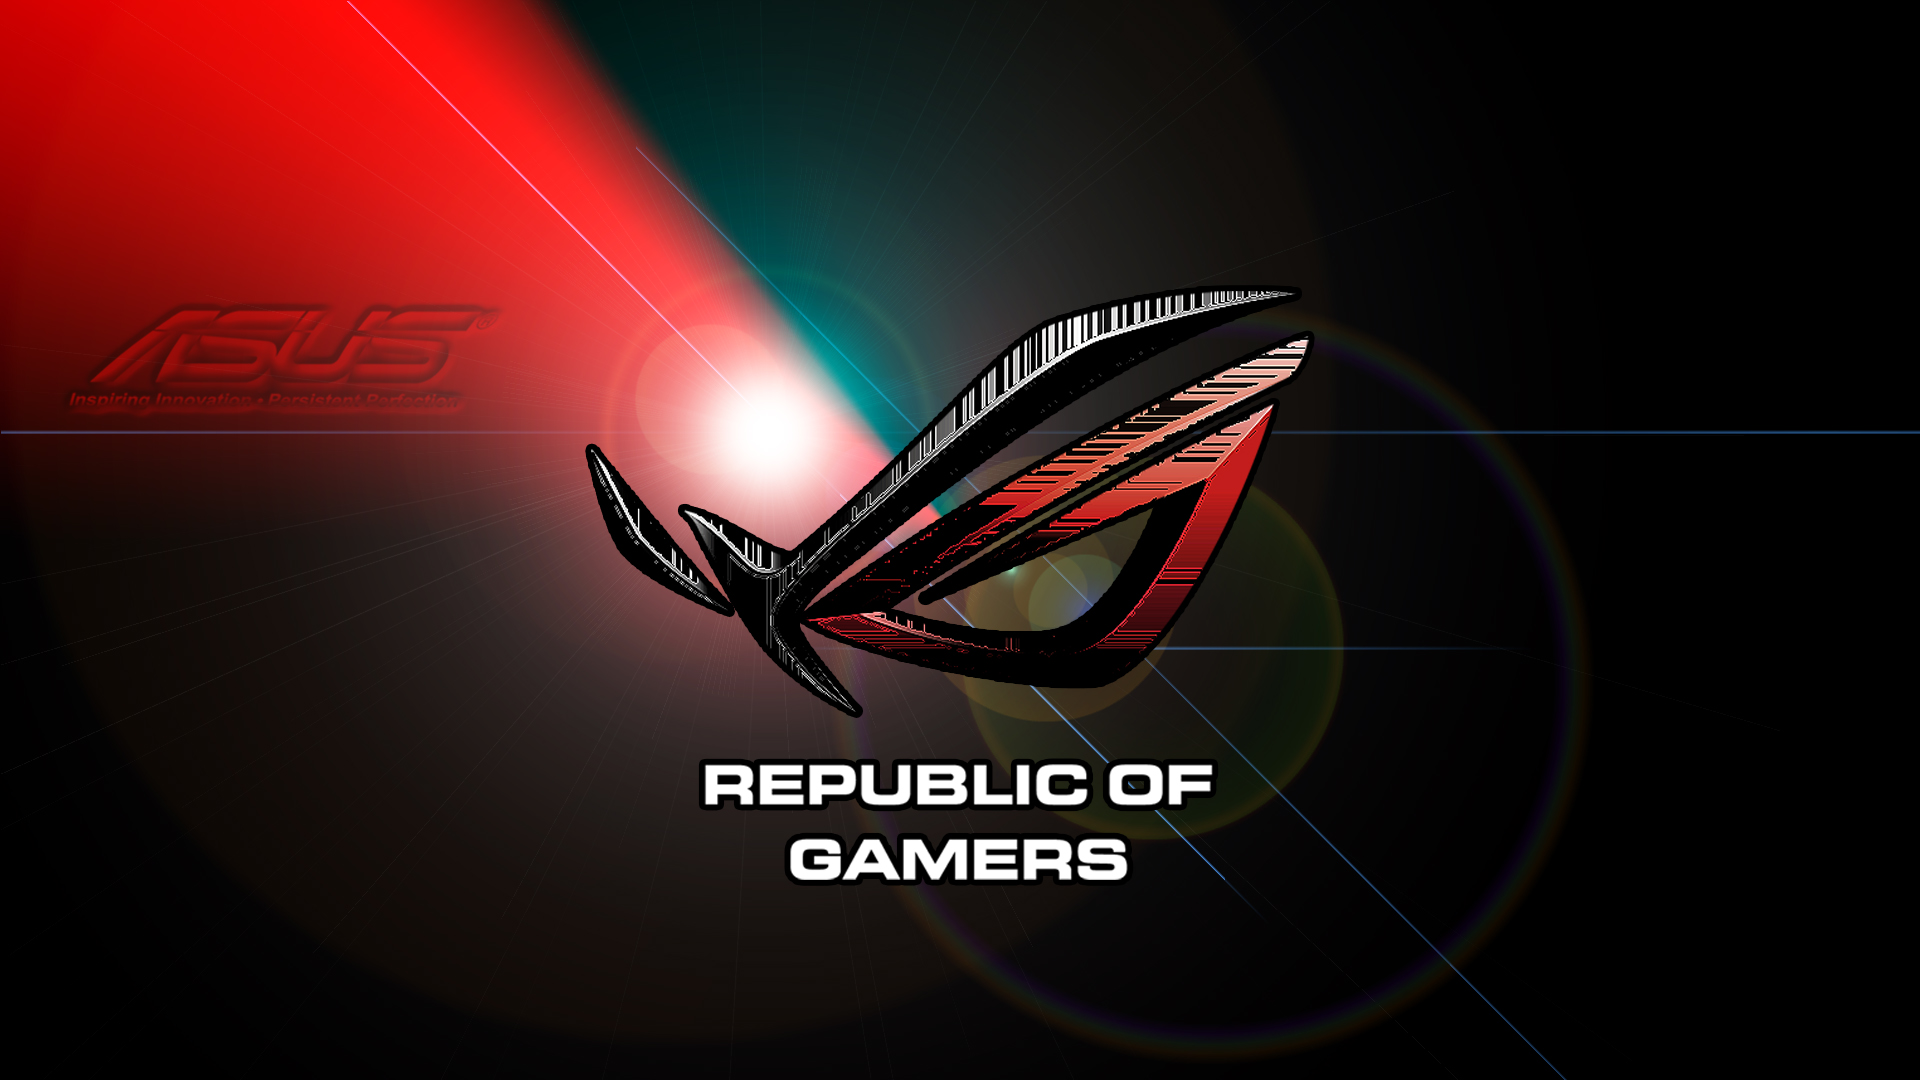 asus rog desktop wallpaper   wallpapersafari